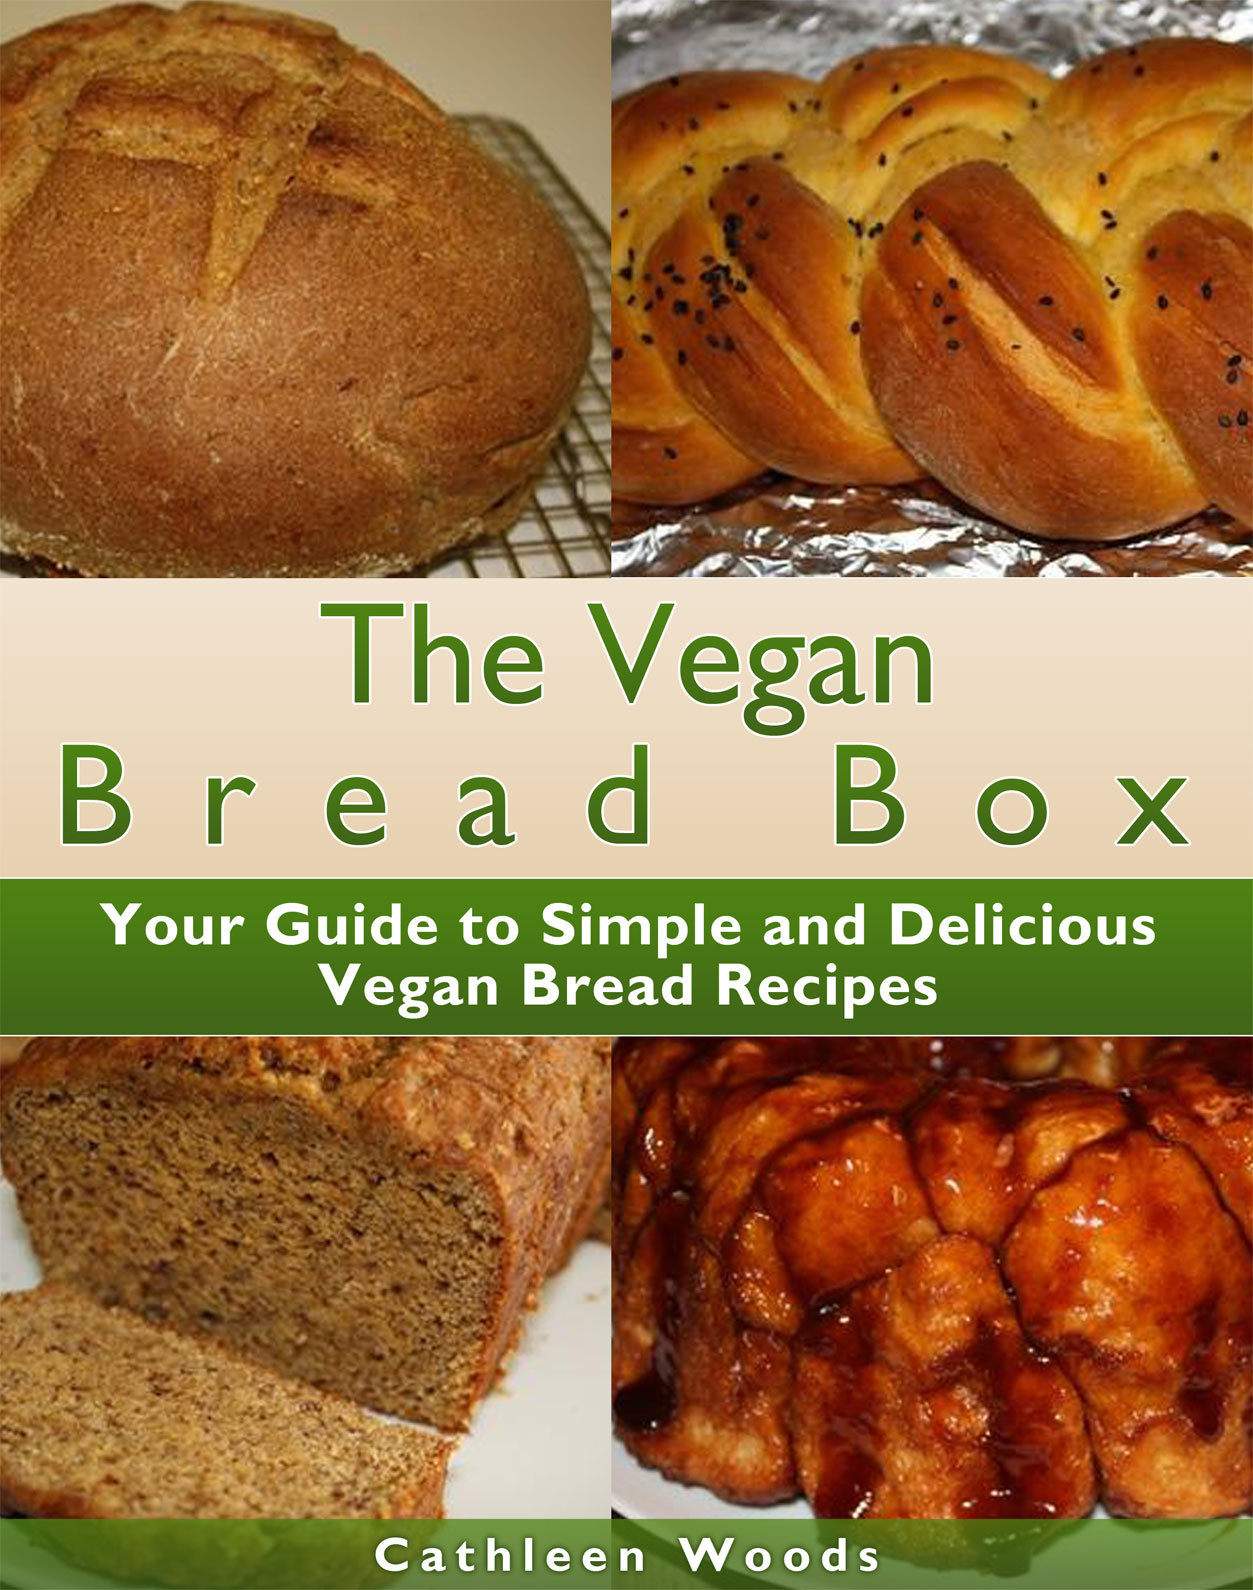 The Vegan Bread Box By: Cathleen Woods